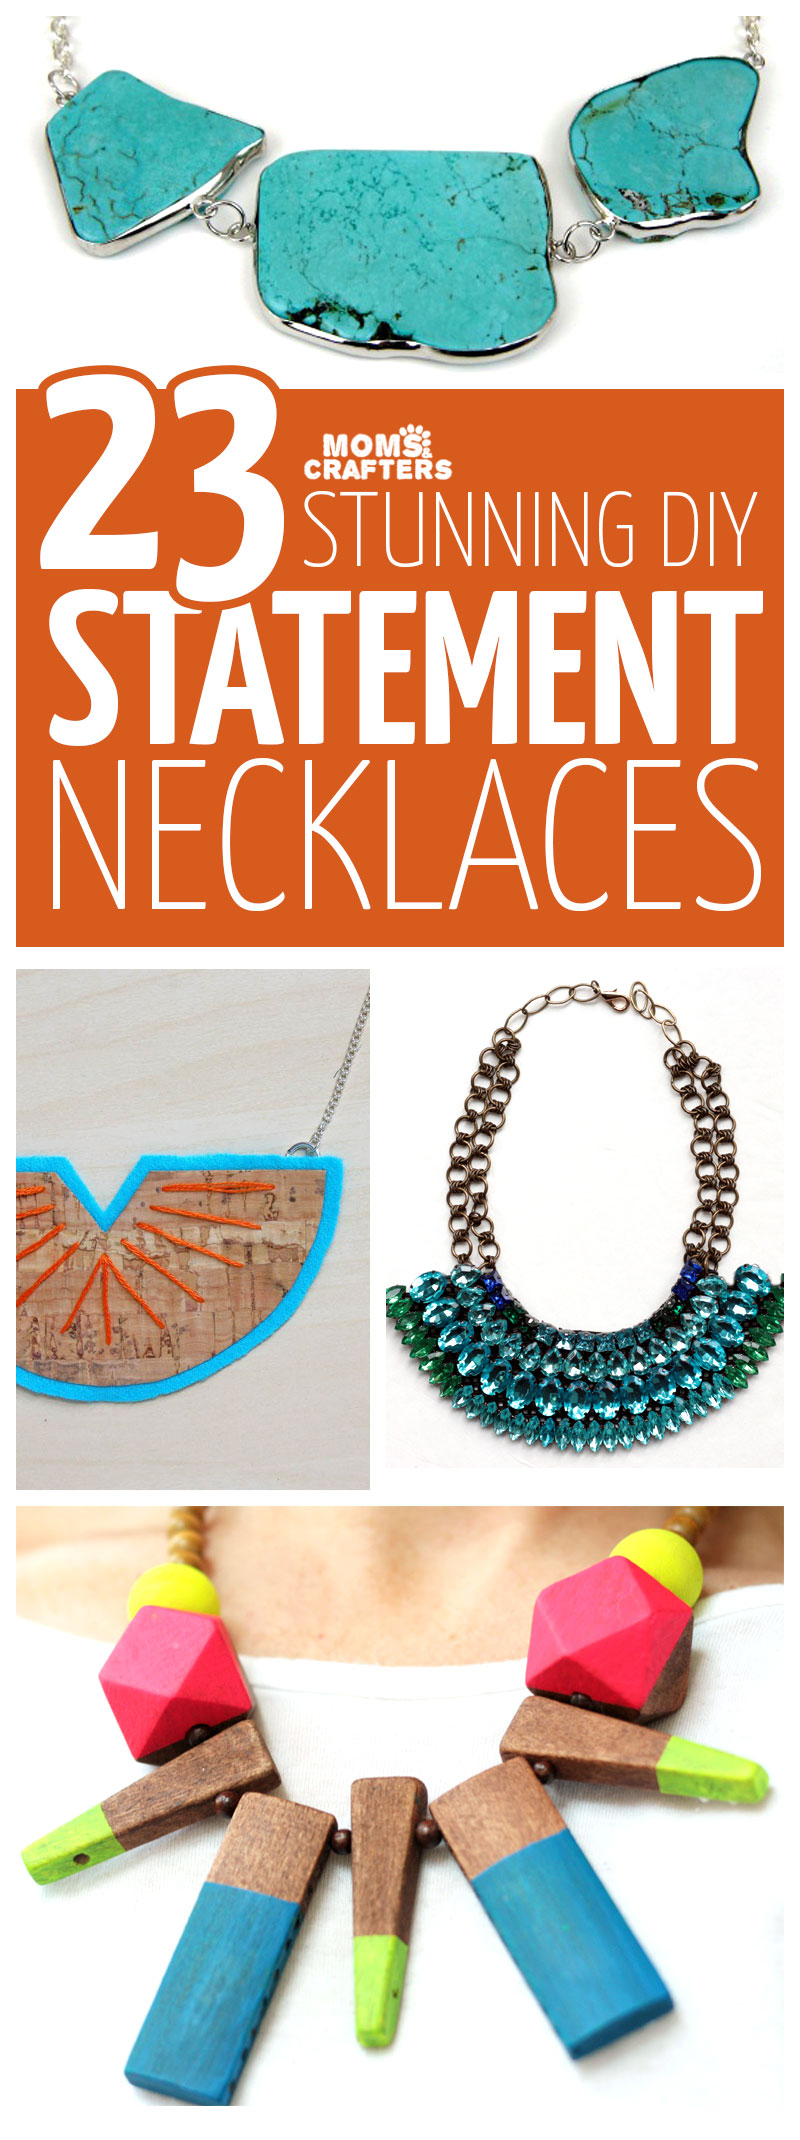 Click for 23 DIY statement necklace ideas for beginners through experts! These beautiful DIY necklaces jewelry making tutorials are perfect for teens and grown-ups too.